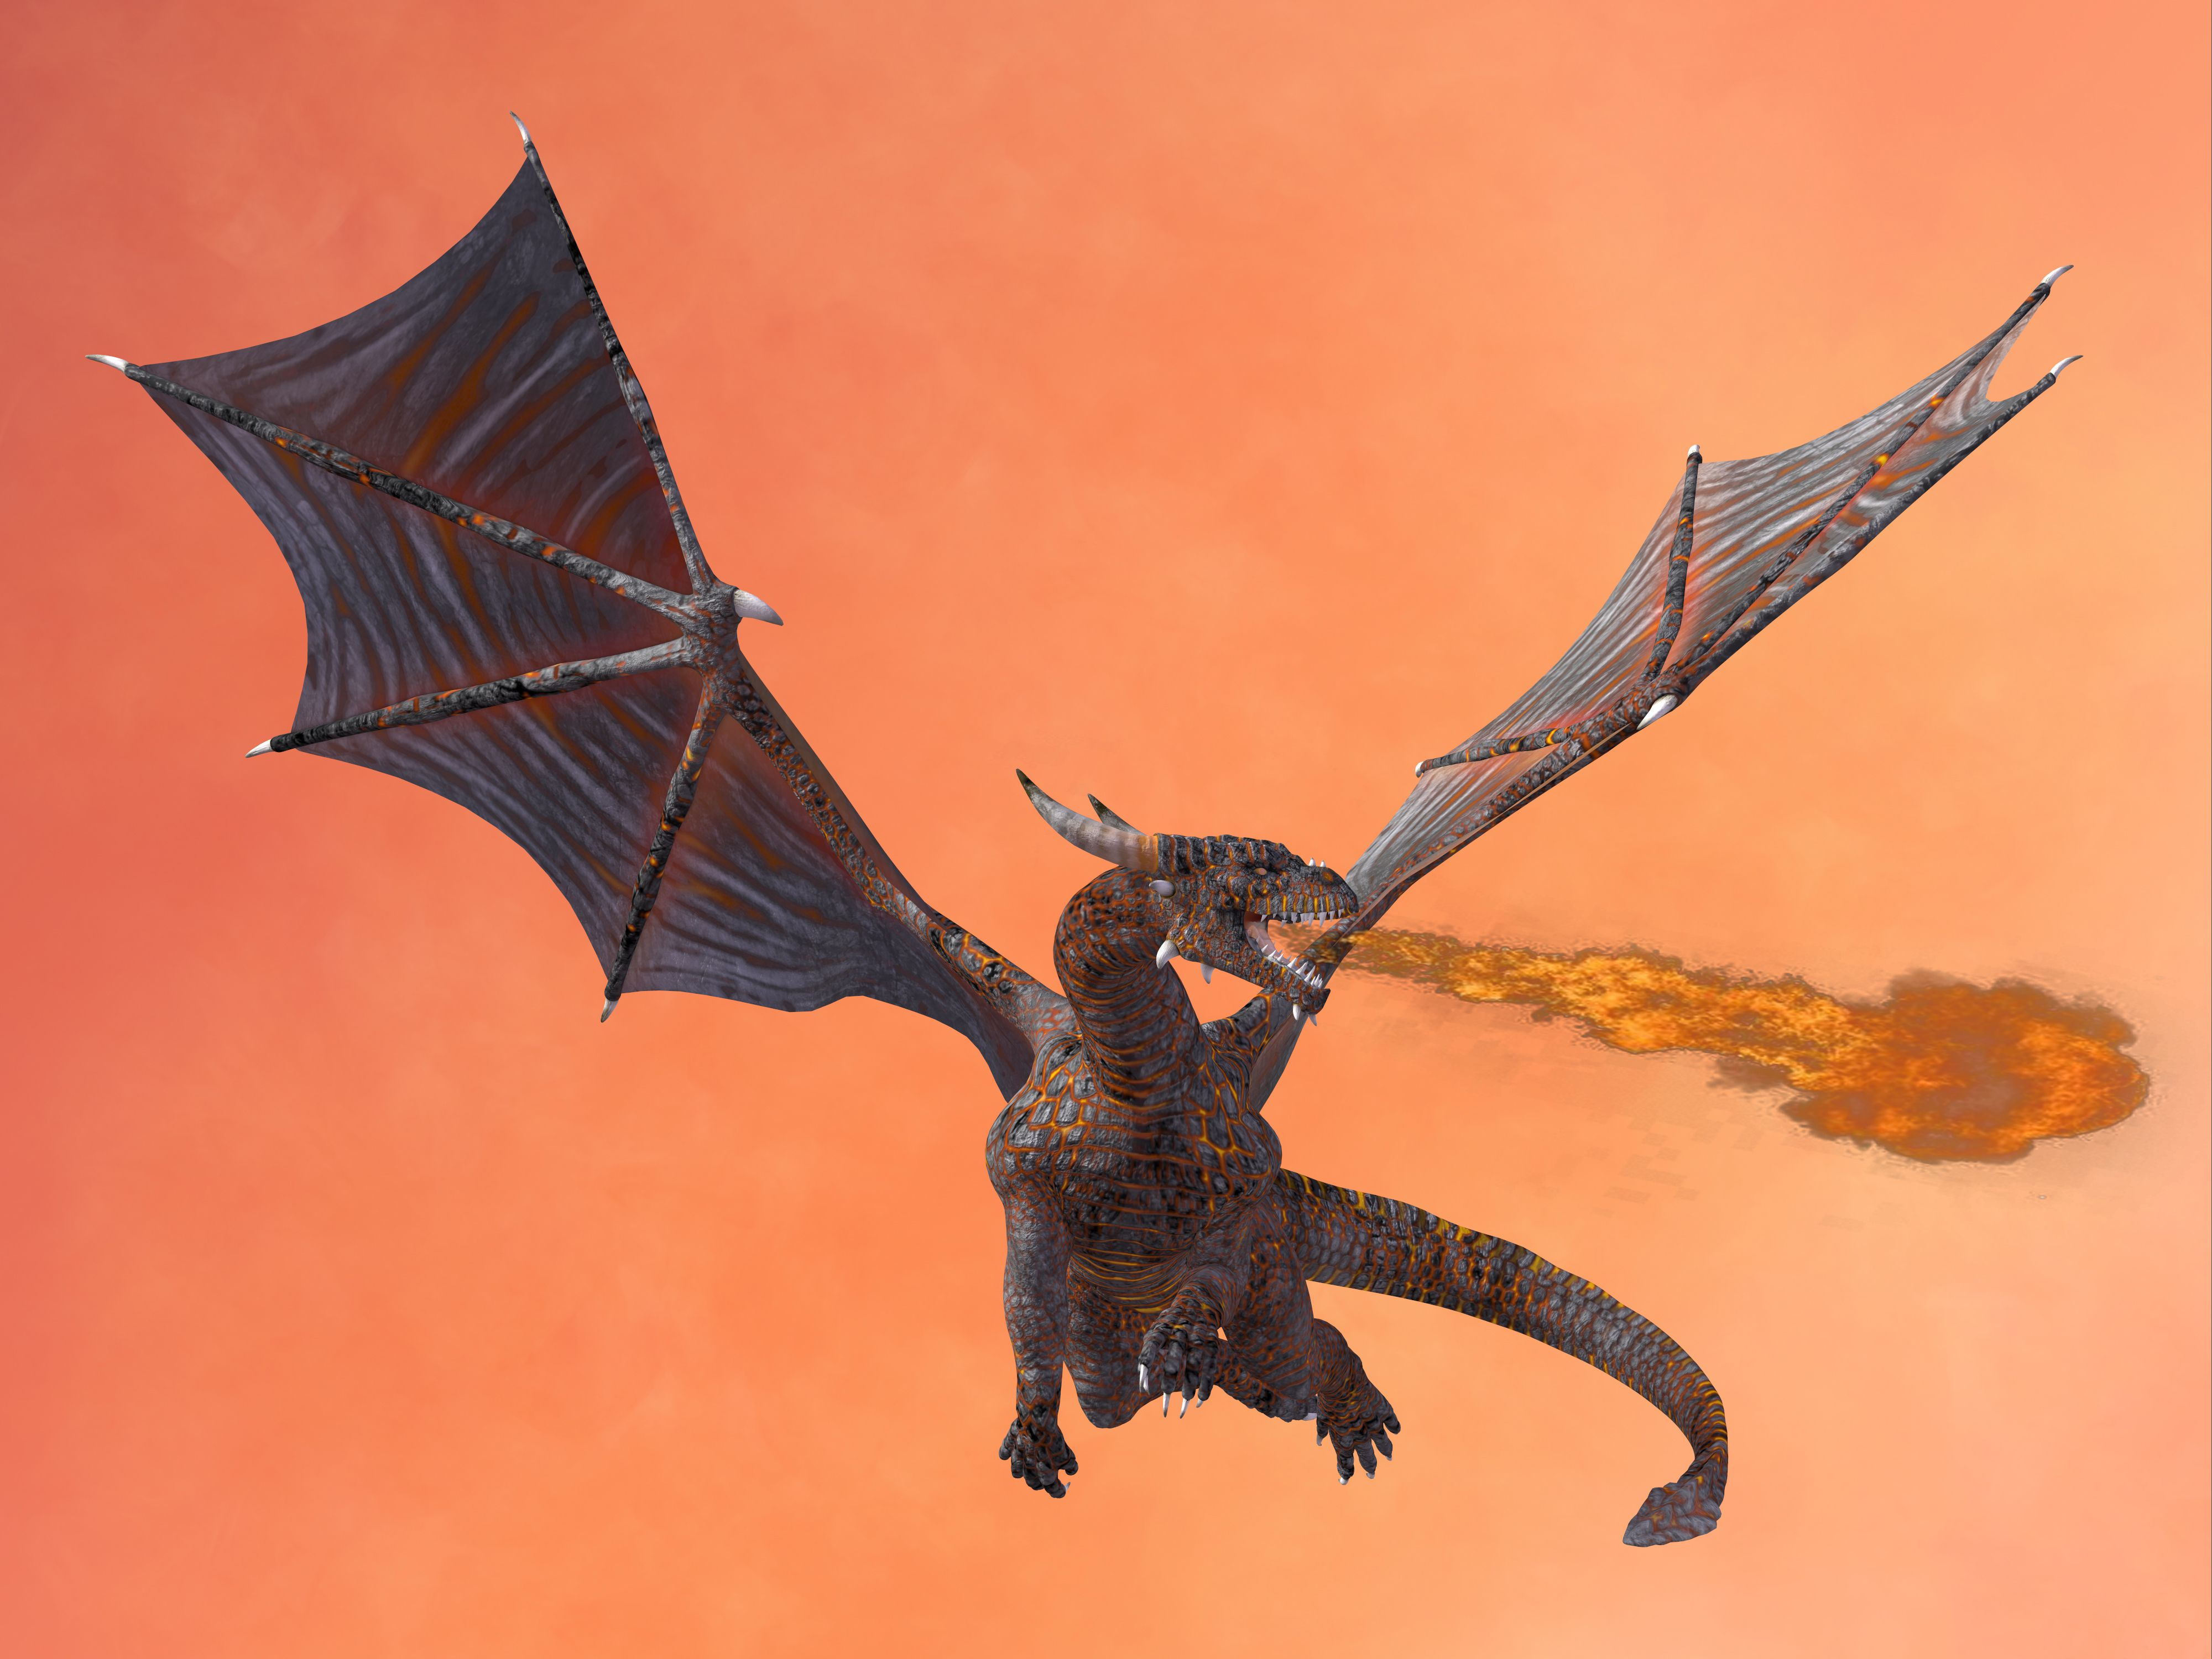 Real Fire Dragon: Flying And Fire Breathing Dragons: The Science